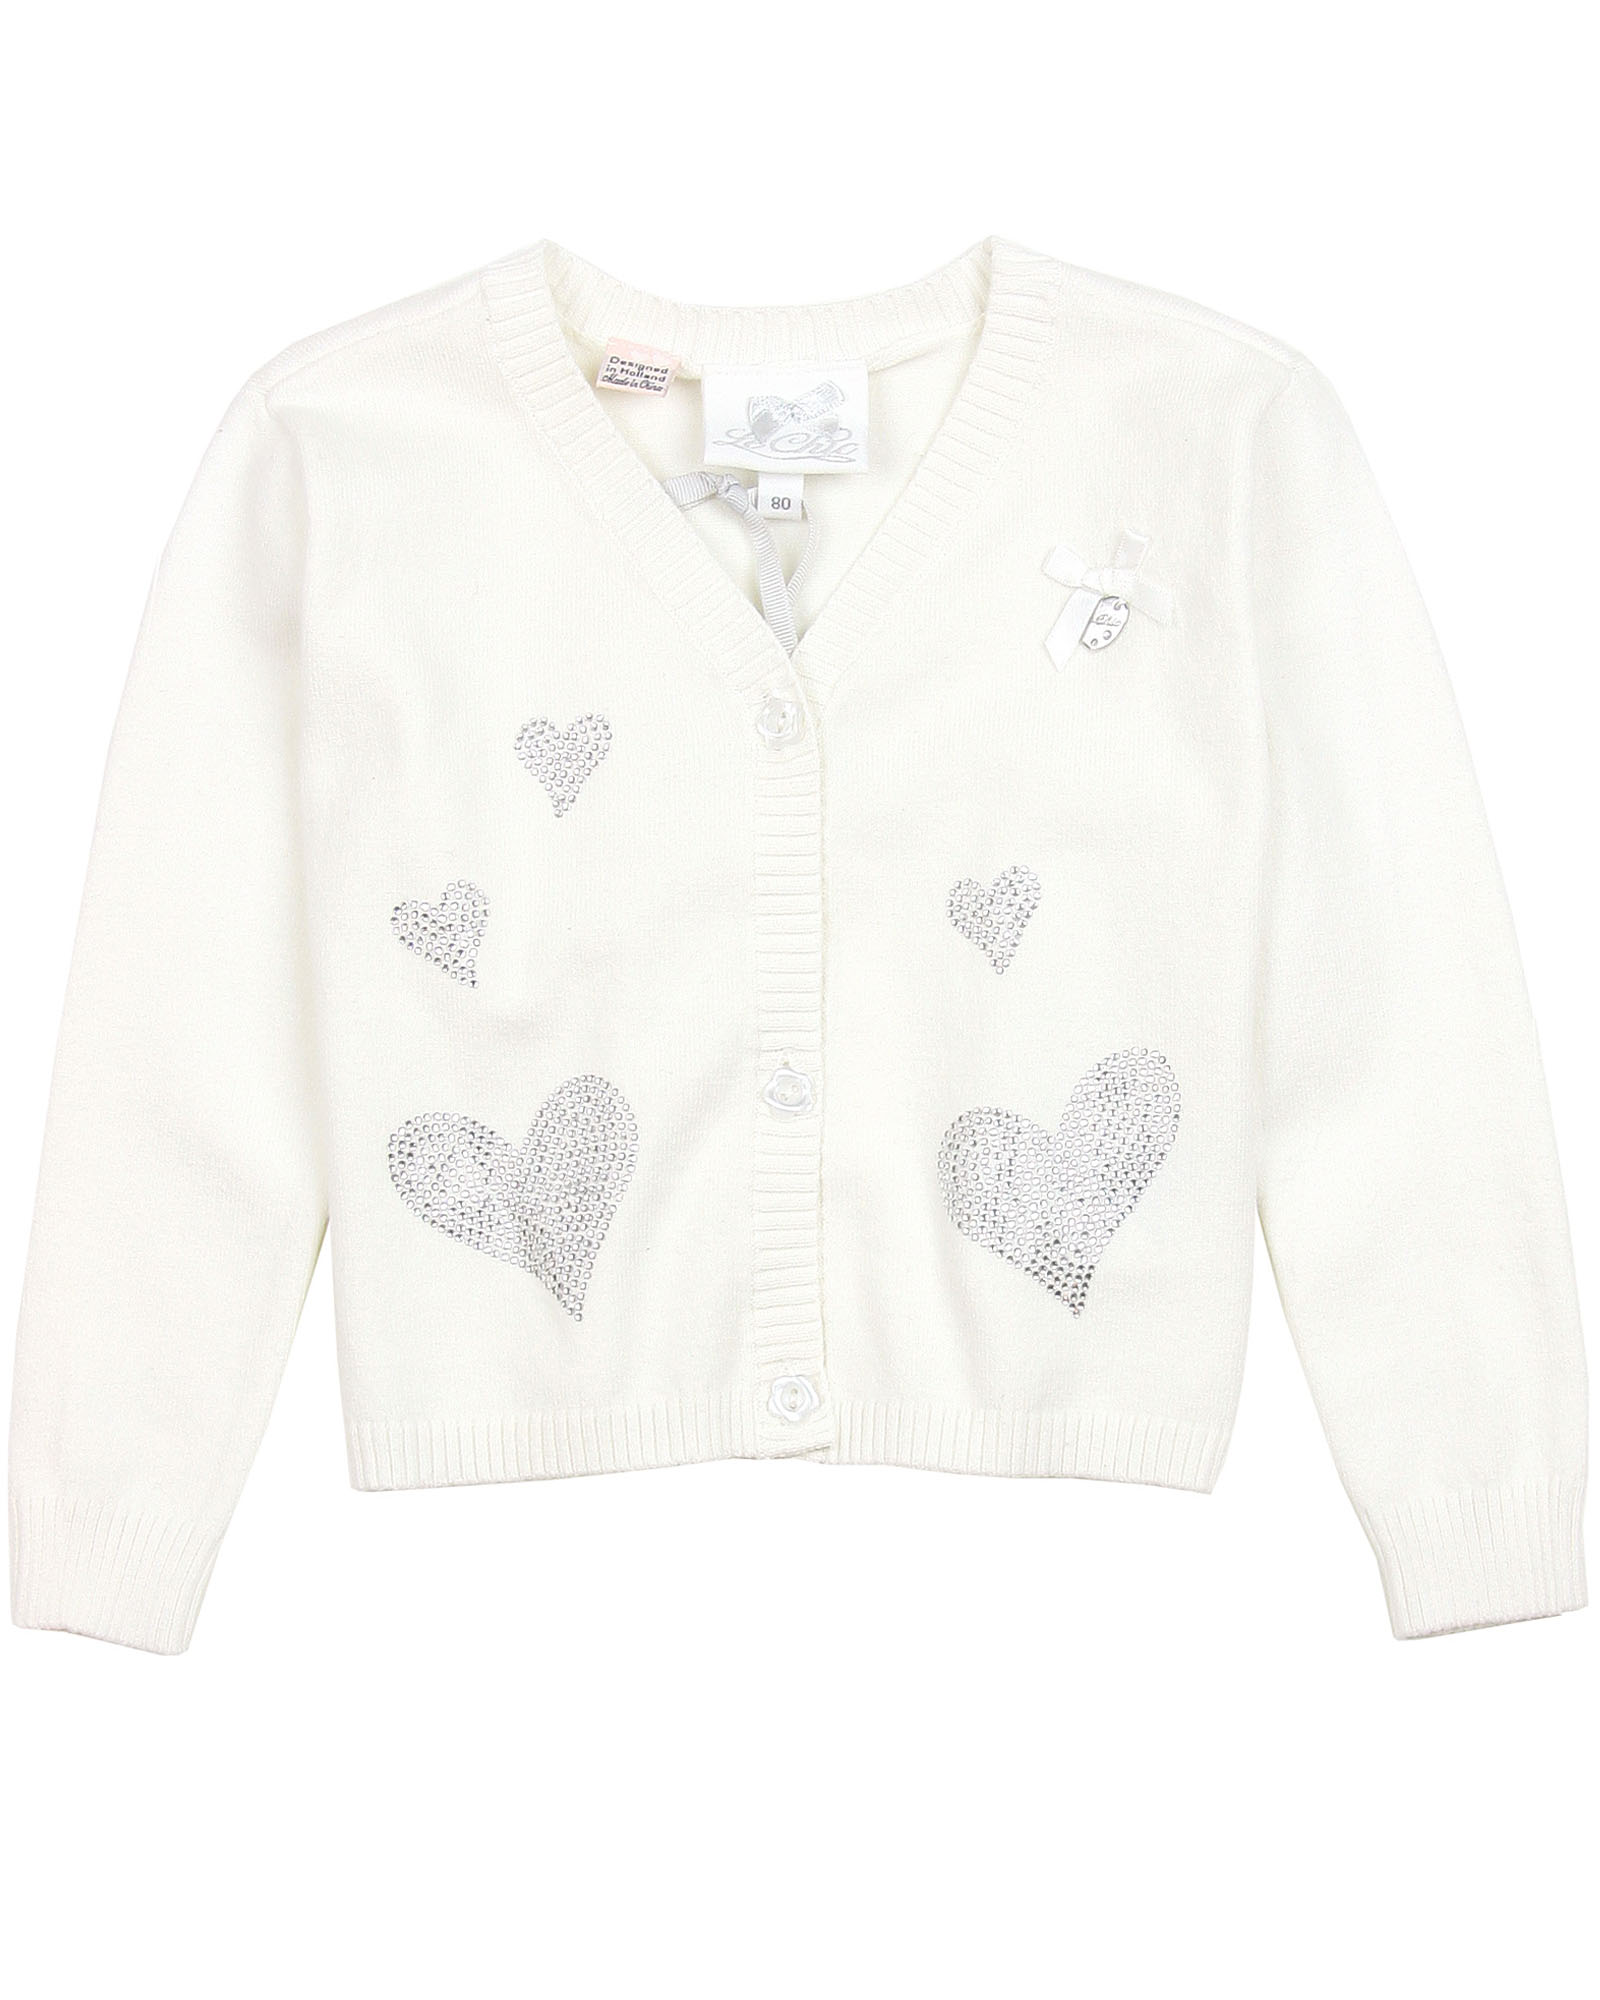 Sizes 3-14 Le Chic Girls Dark Gray Cardigan with Sequin Bows